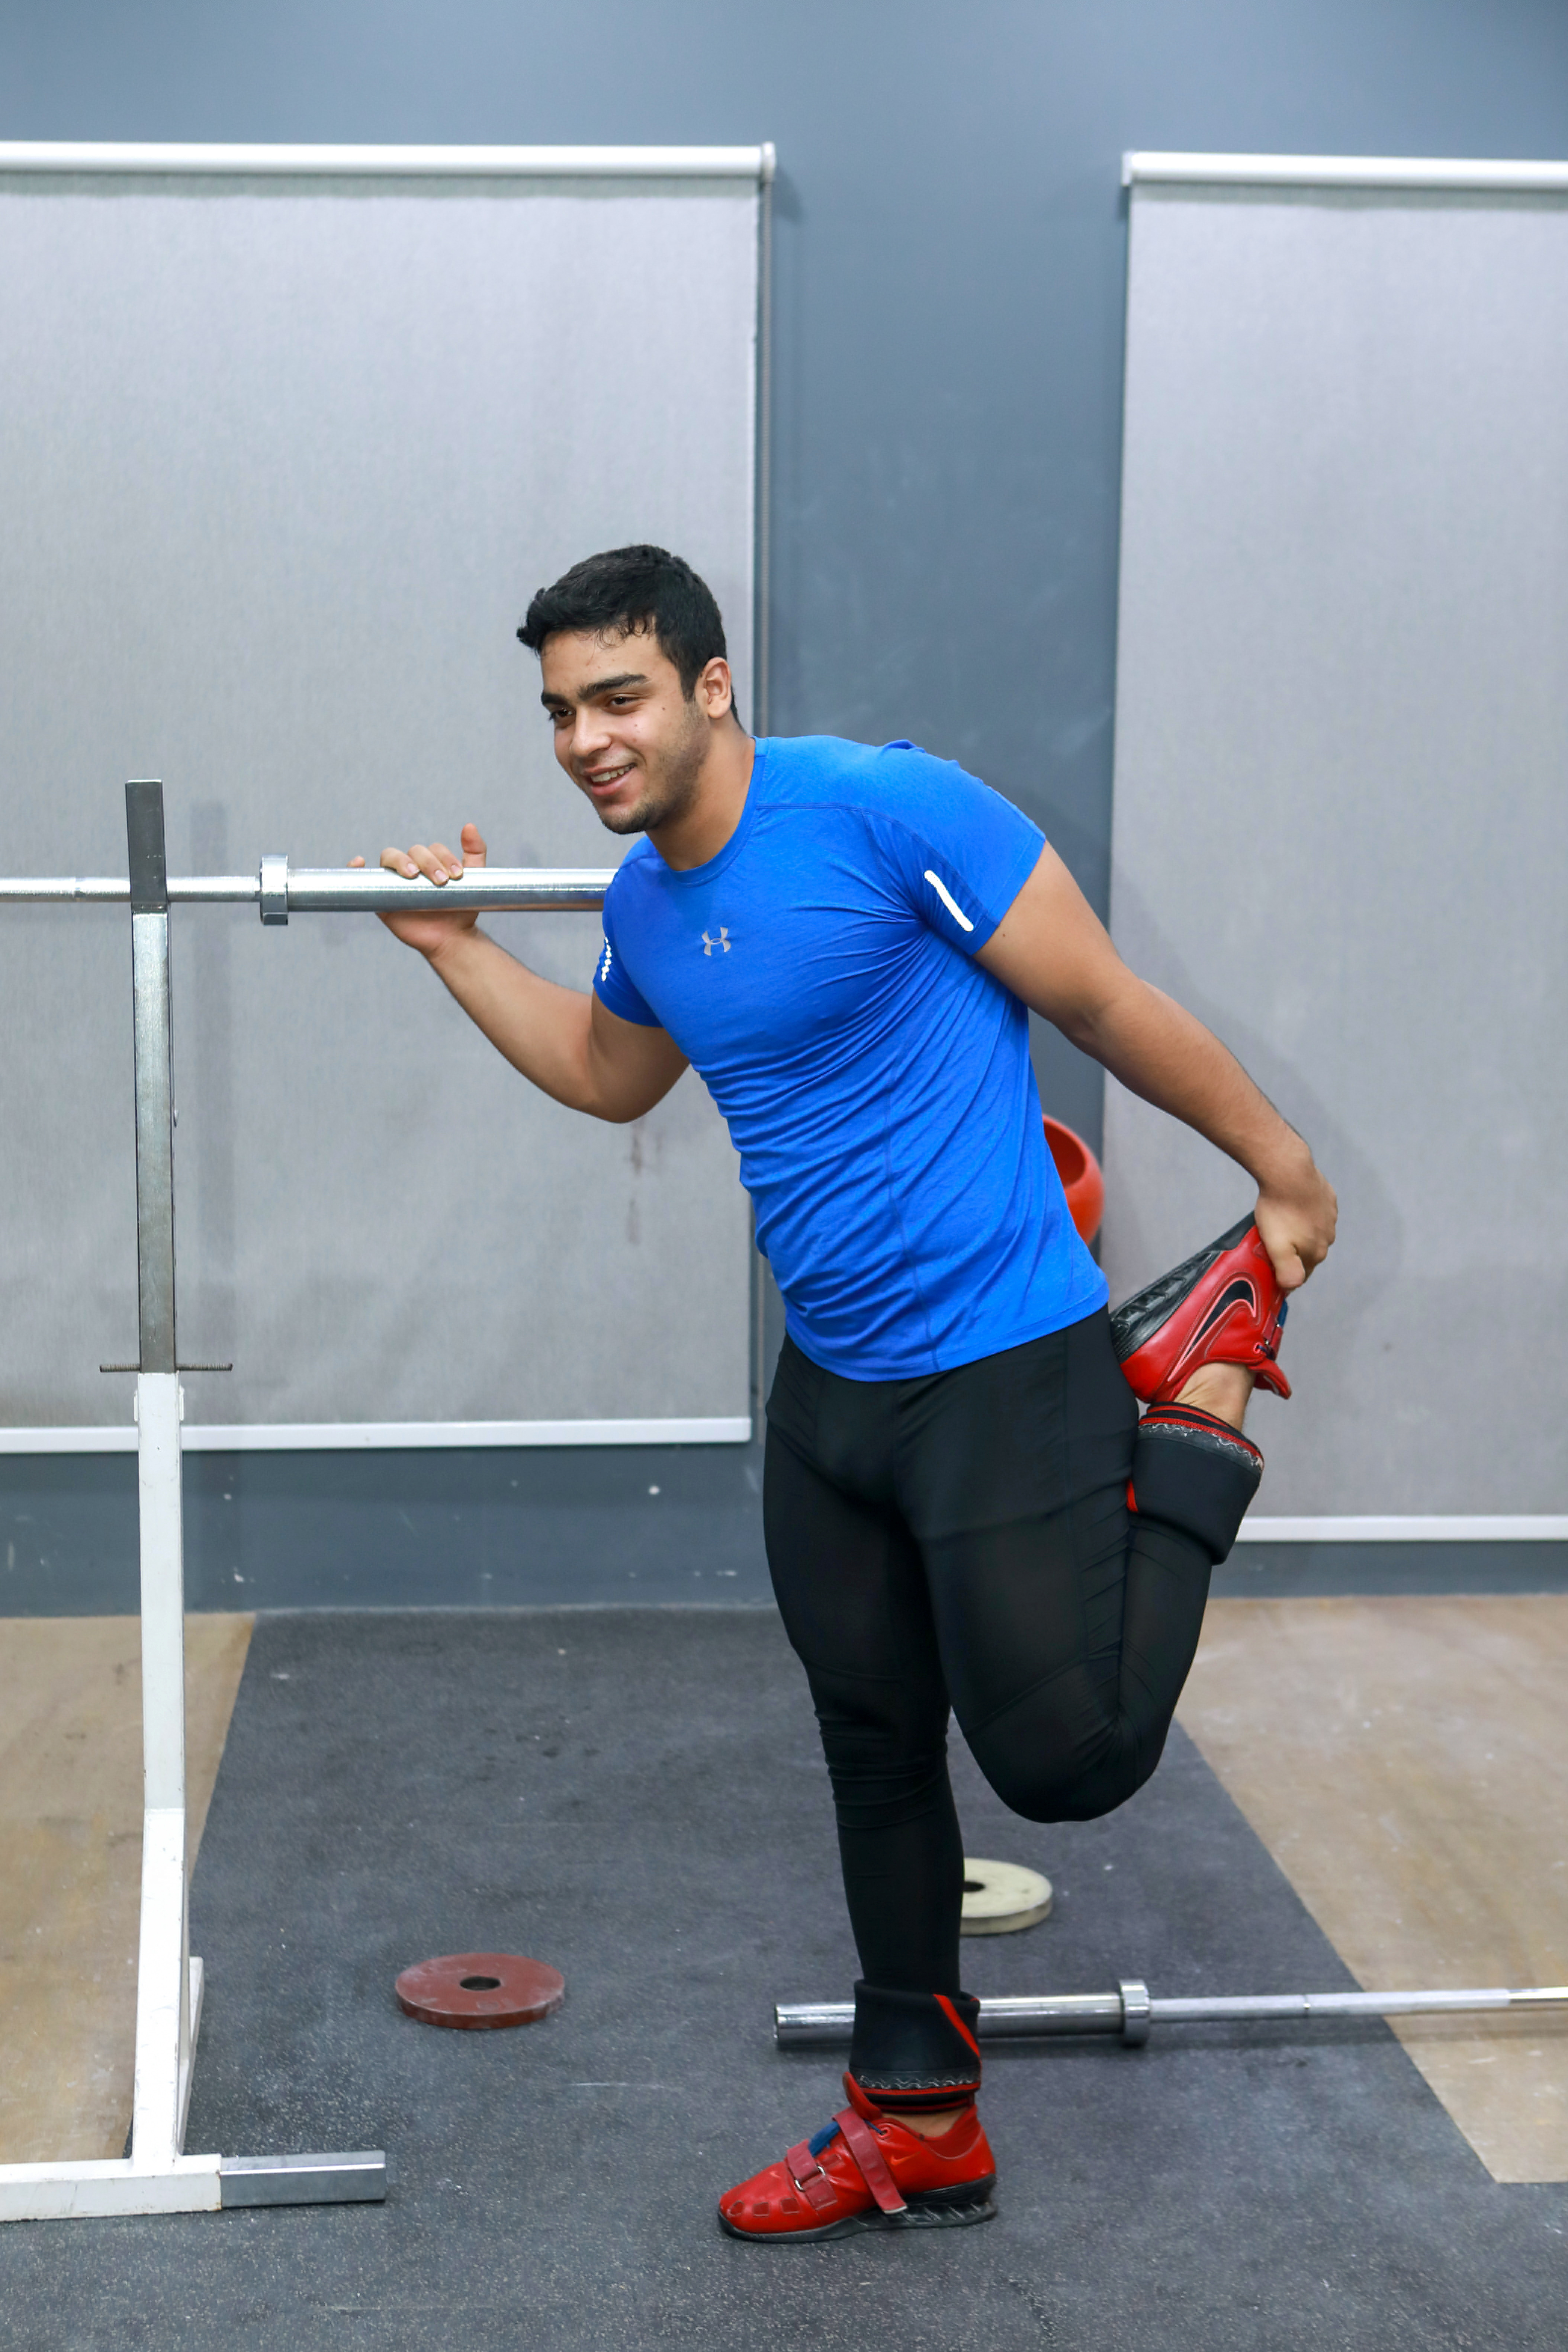 Gaza weight-lifter Mohammad Hamada who is the first Palestinian to compete in the game at the Olympics when it kicks off in Tokyo, practices at a gym in Doha, Qatar July 18, 2021. REUTERS/Rami Barbour